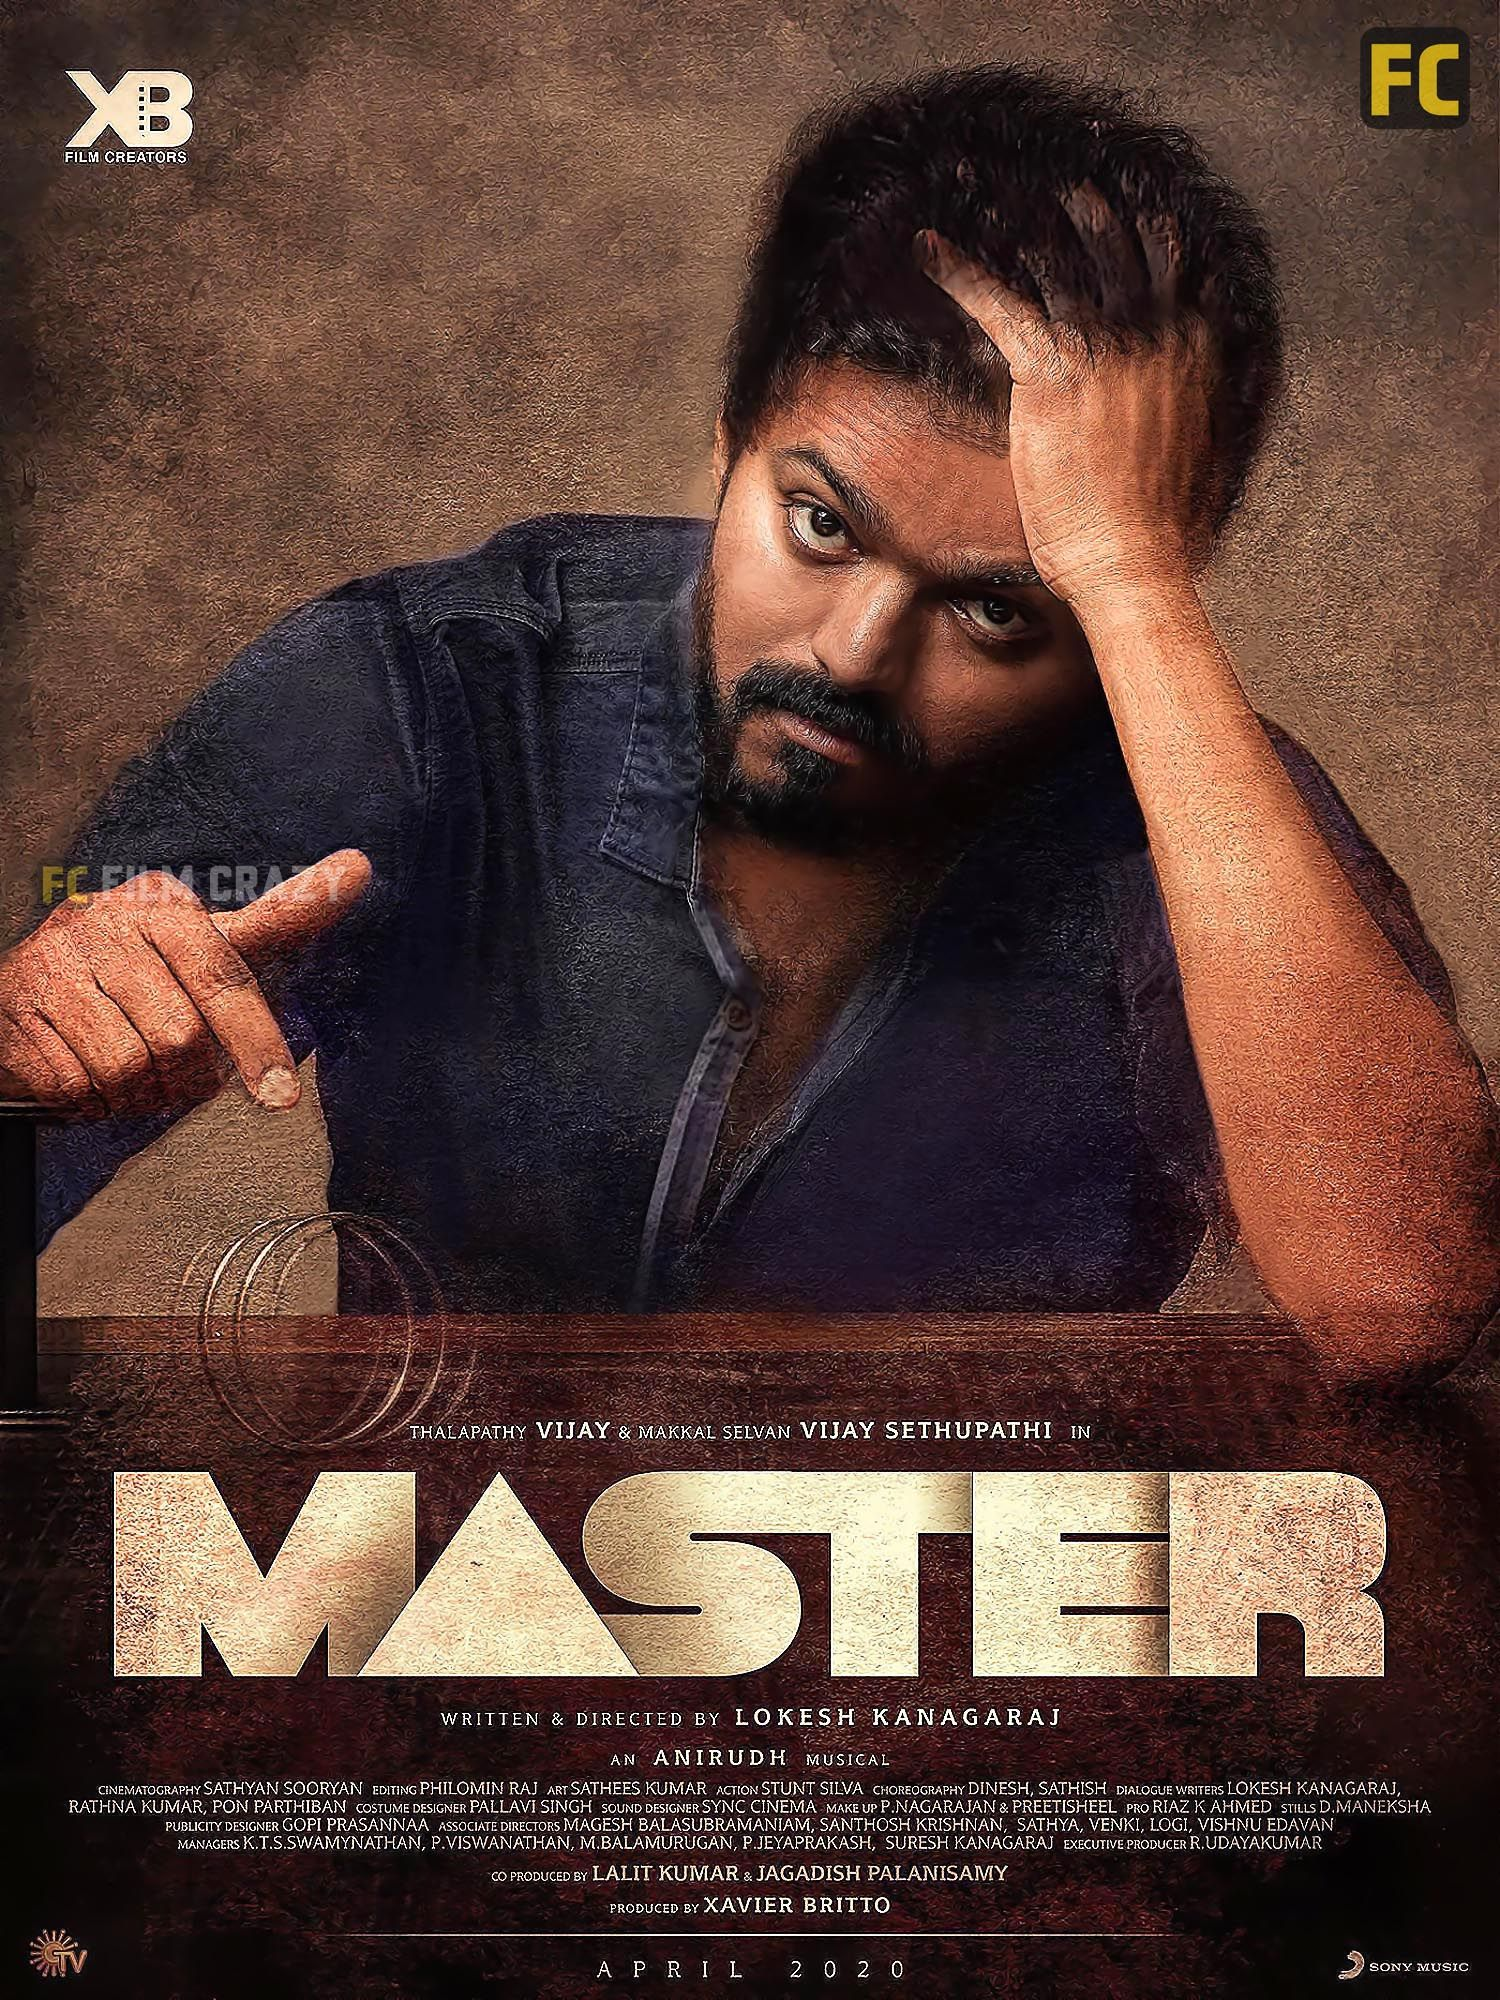 Thalapathy Vijay S Master Movie Stills In 2020 Master Vijay Actor Actor Photo